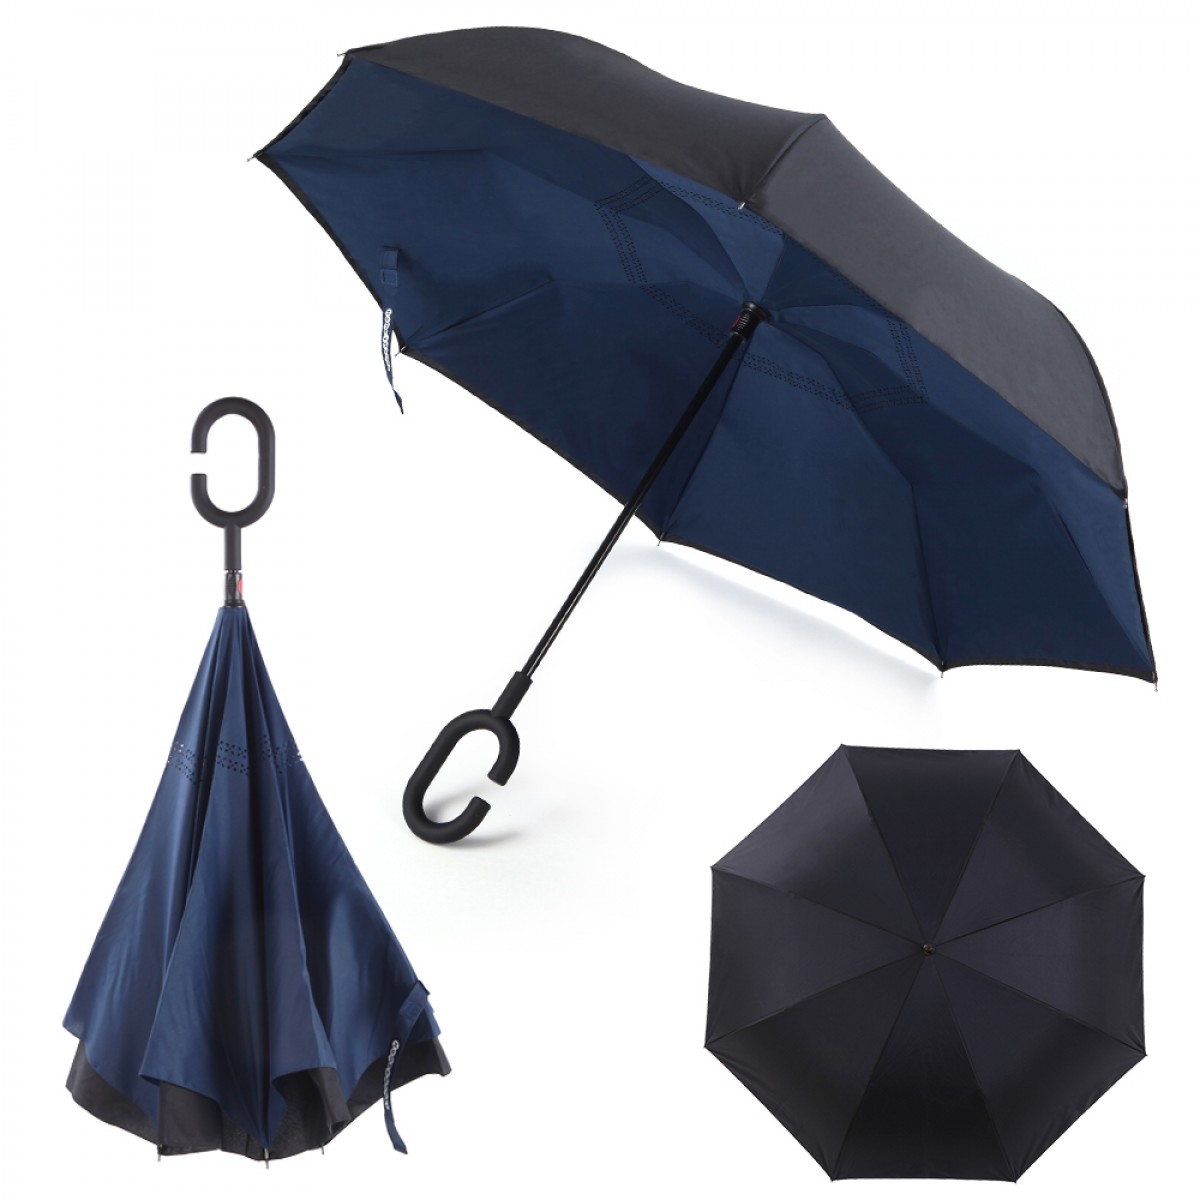 710a30073d40 Windproof Inverted Umbrella for Cars Reverse Open Double Layer with UV  Protection and C-Shape Sweat-proof Handle - Blue | By HomeyHomes